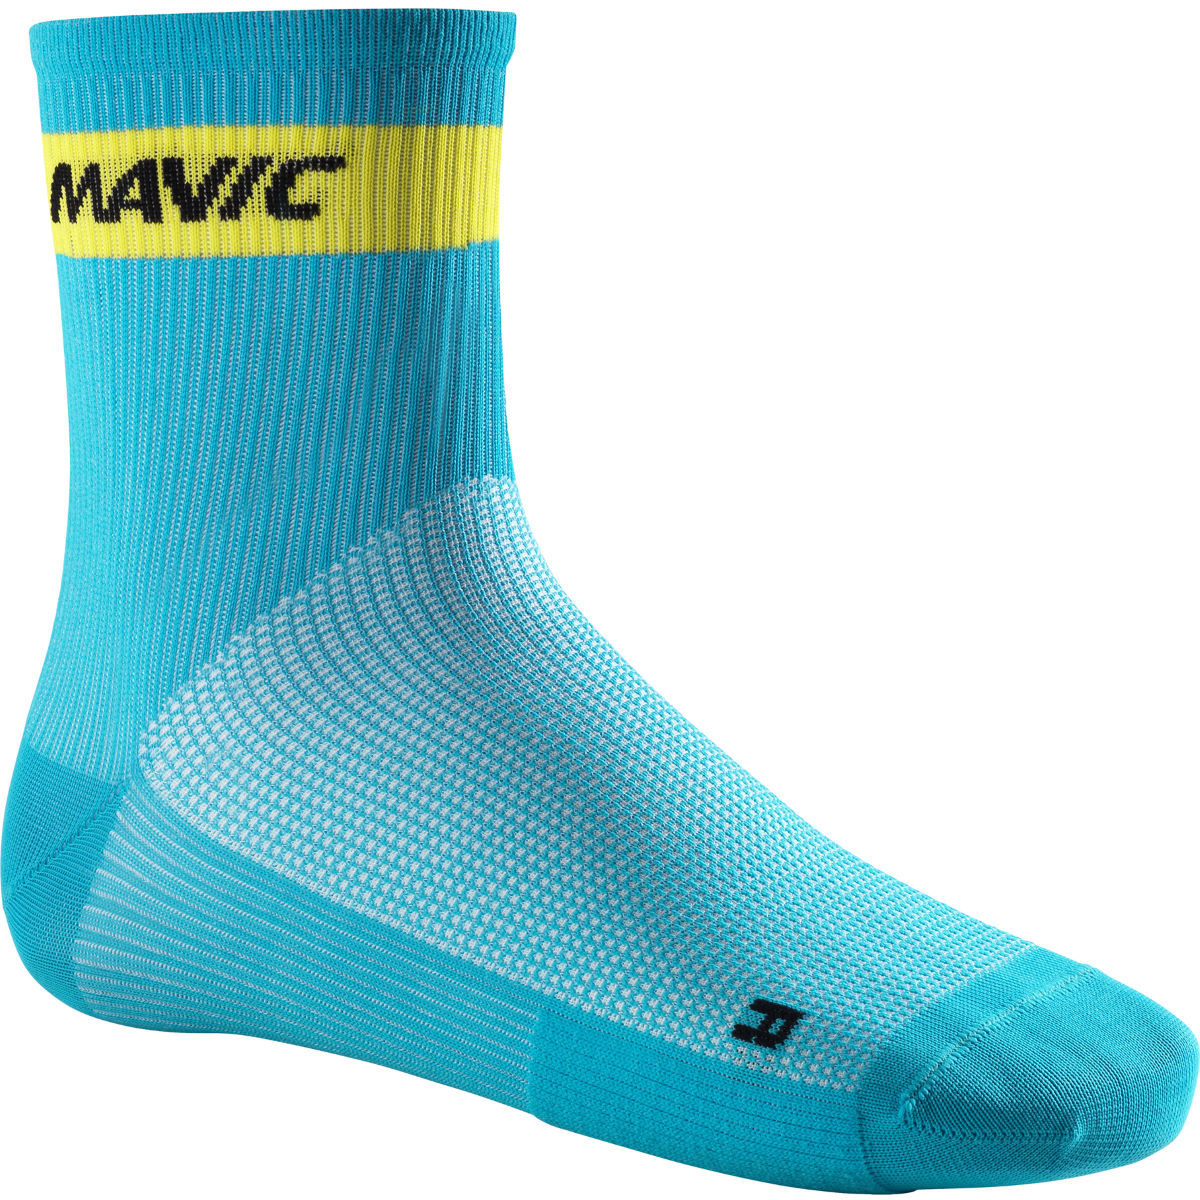 Chaussettes Mavic Cosmic (moyennes) - S Dresden Blue Chaussettes